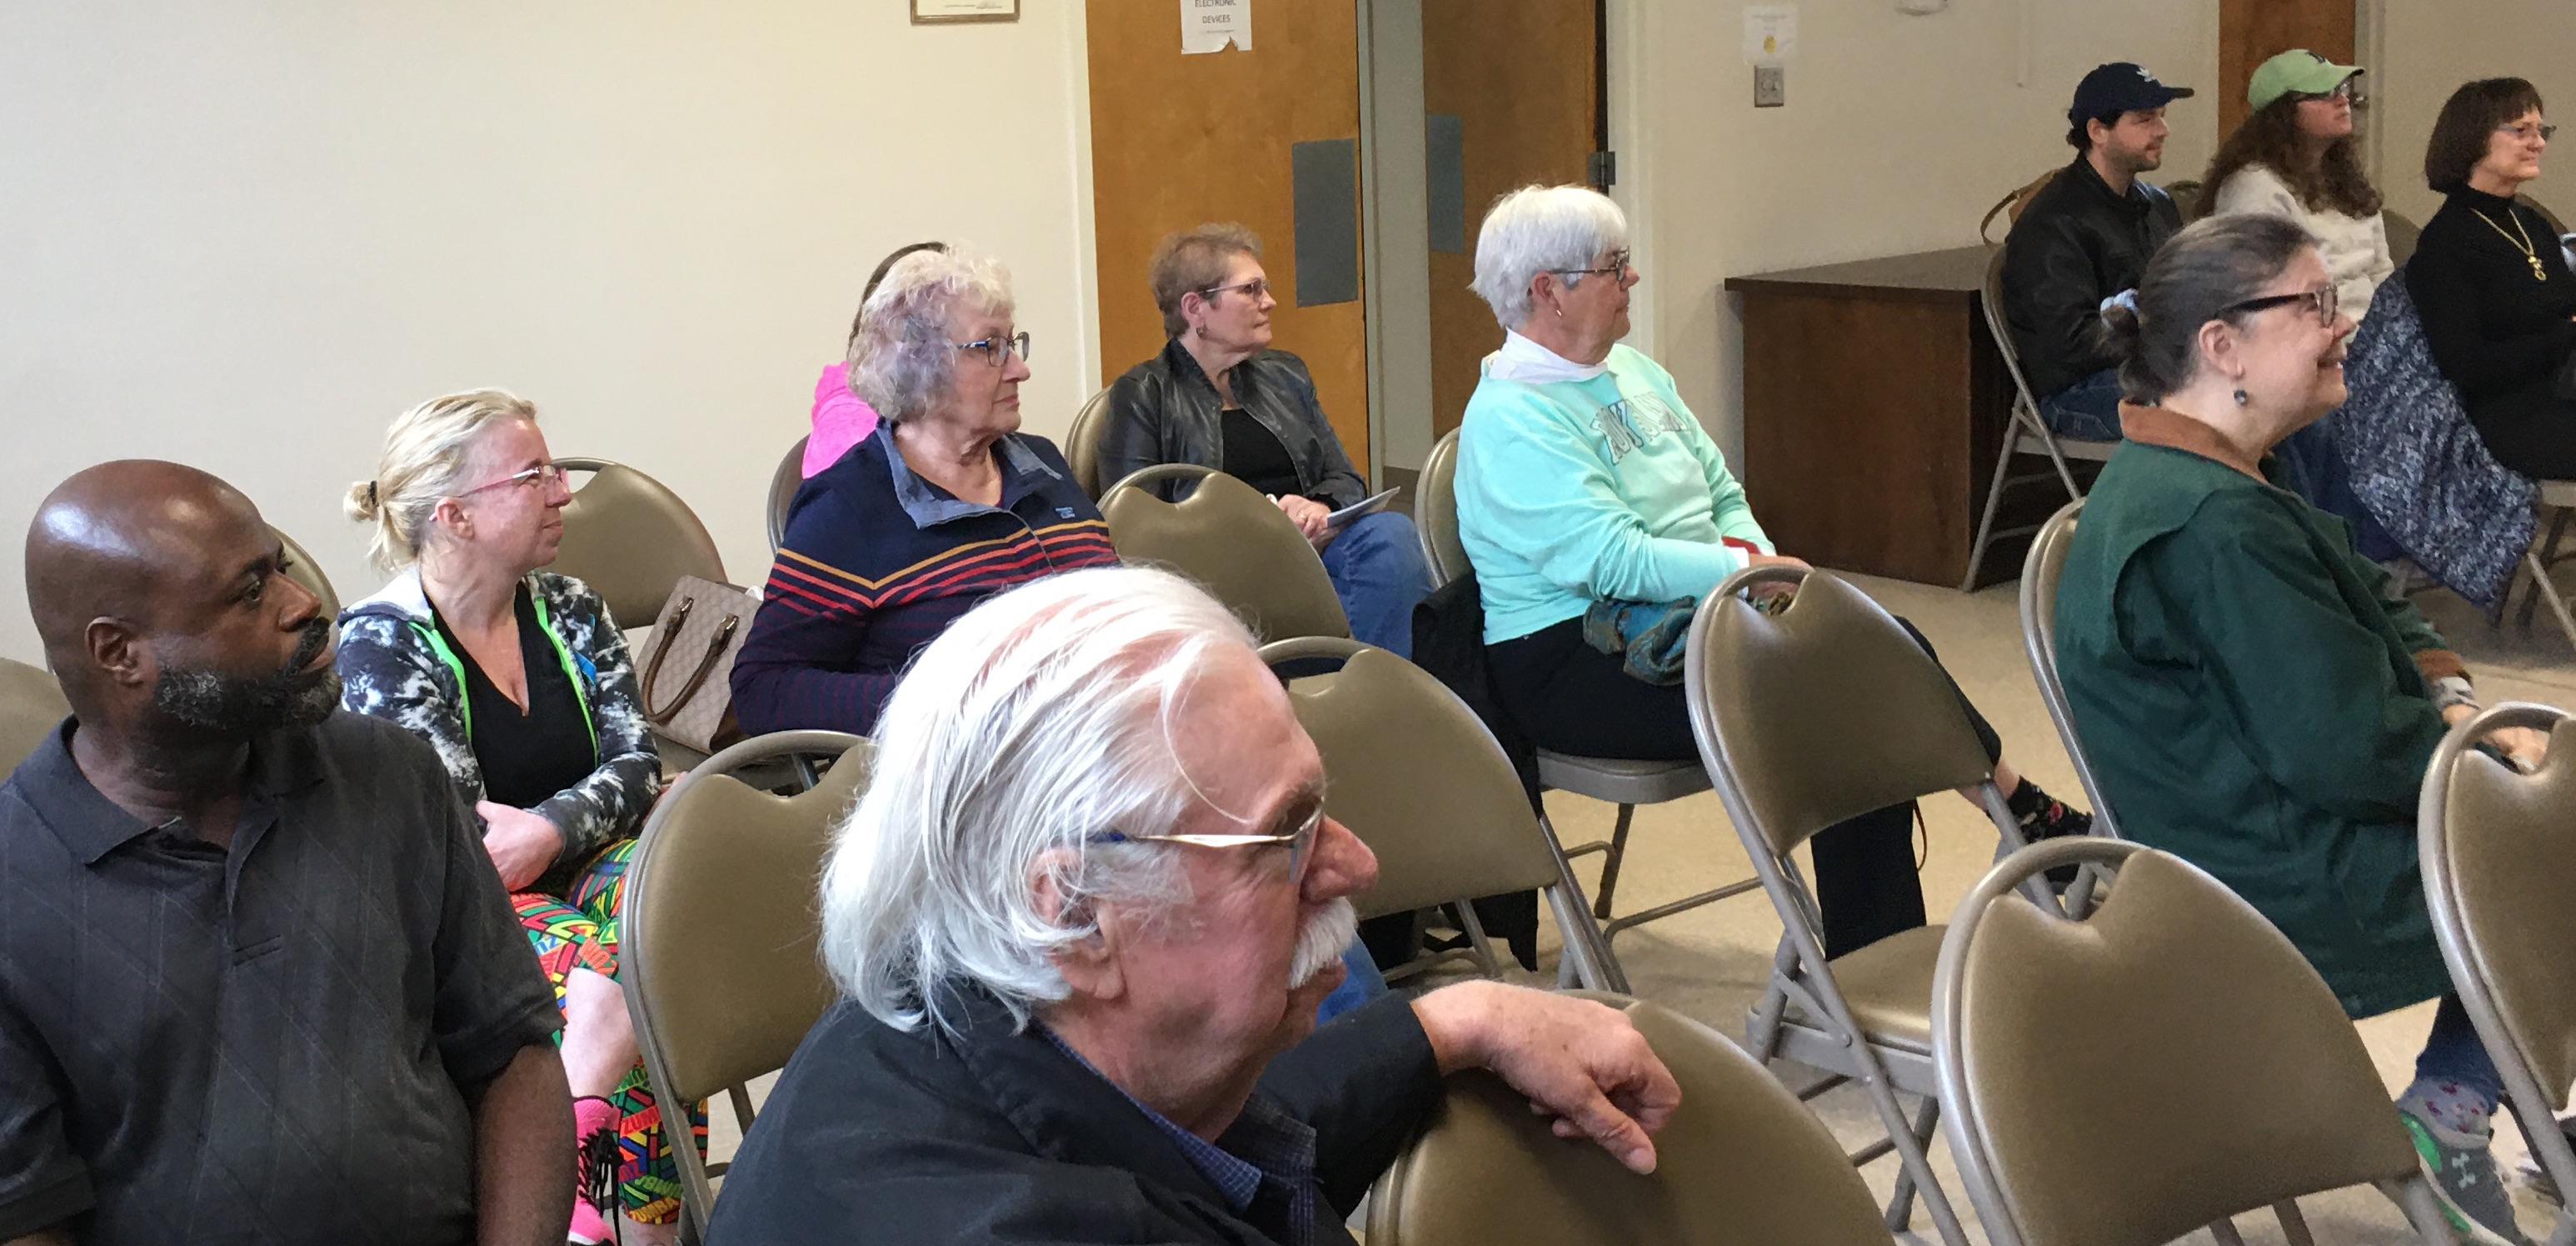 at our Feb. 2020 meeting in the Annex Building